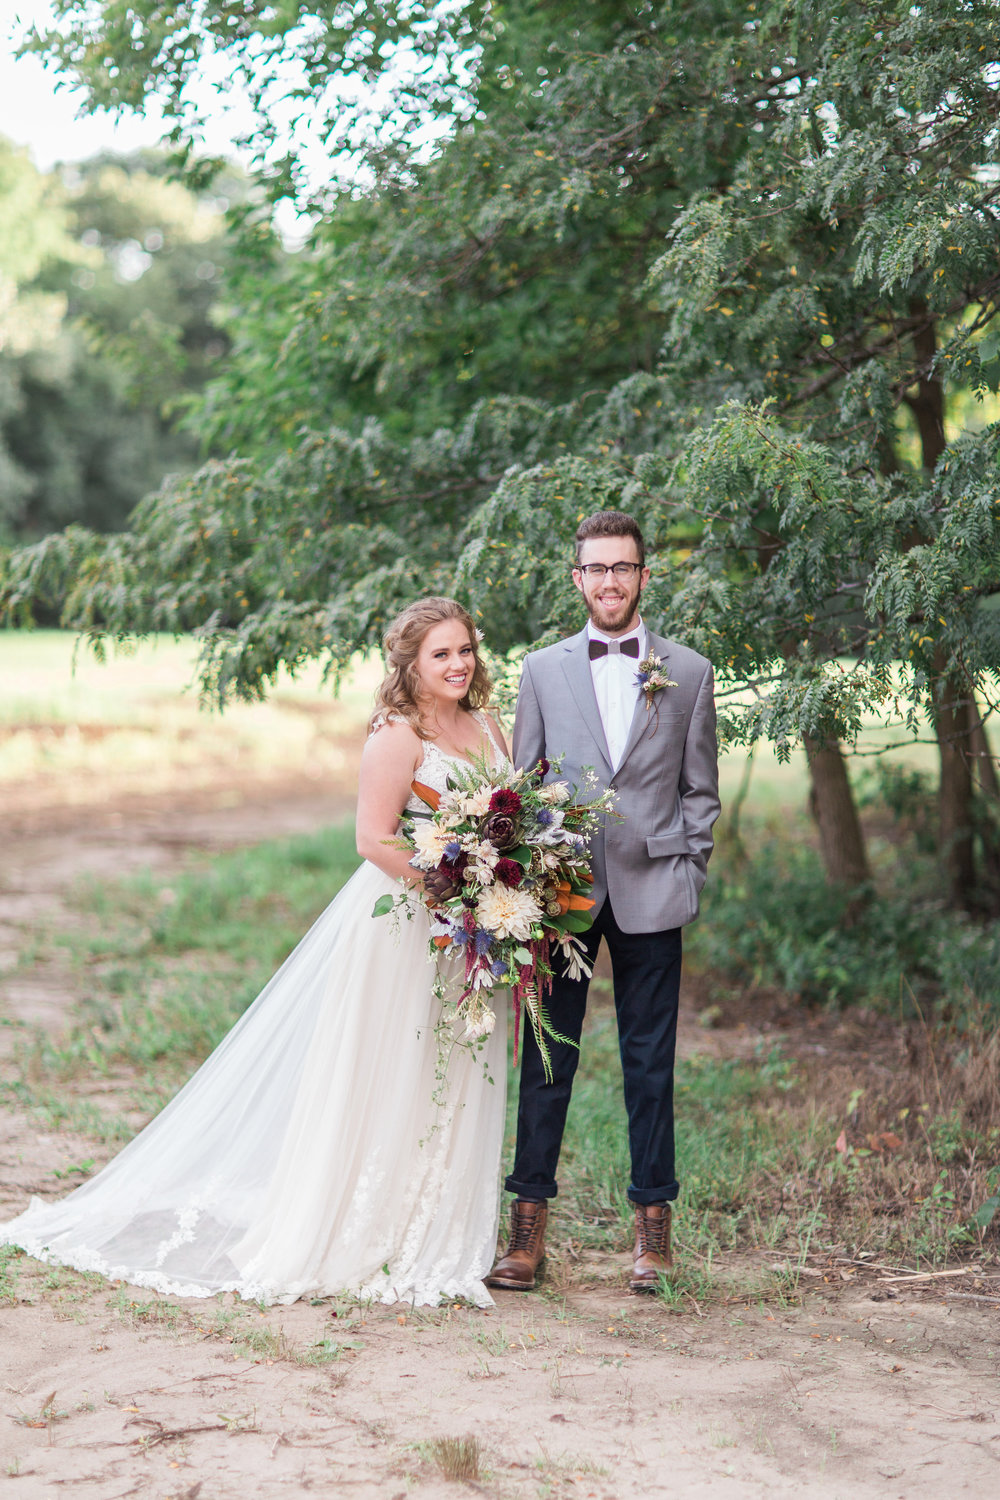 country-lane-lodge-adel-iowa-wedding-venue-iowa-wedding-planned-by-mostly-becky-weddings-boho-wedding-orange-purple-flowers-blue-suite-brown-boots-outdoor-ceremony